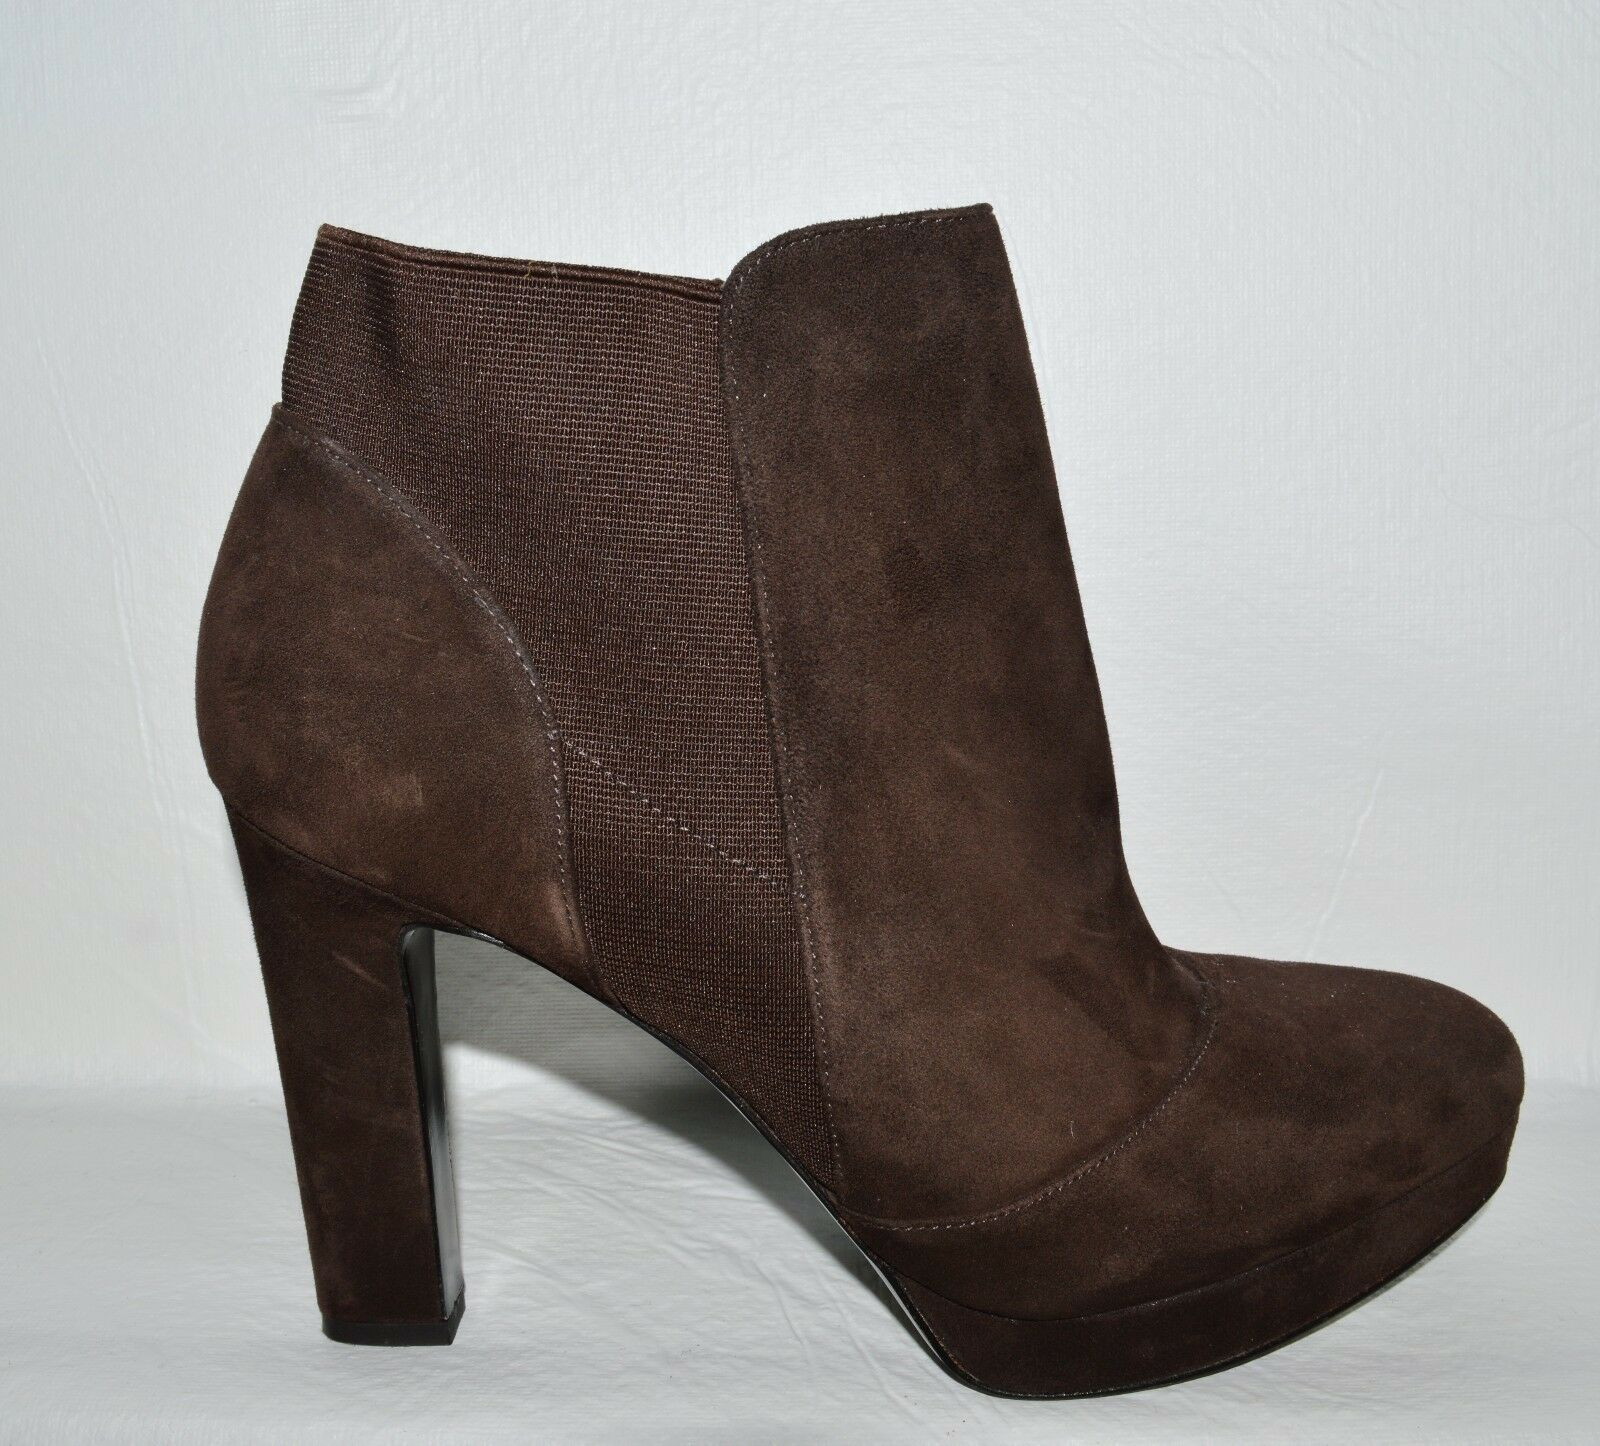 VIA SPIGA NEW  275 SZ 10 M BROWN SUEDE PLATFORM ANKLE BOOTS HIGH HEEL BOOTIES